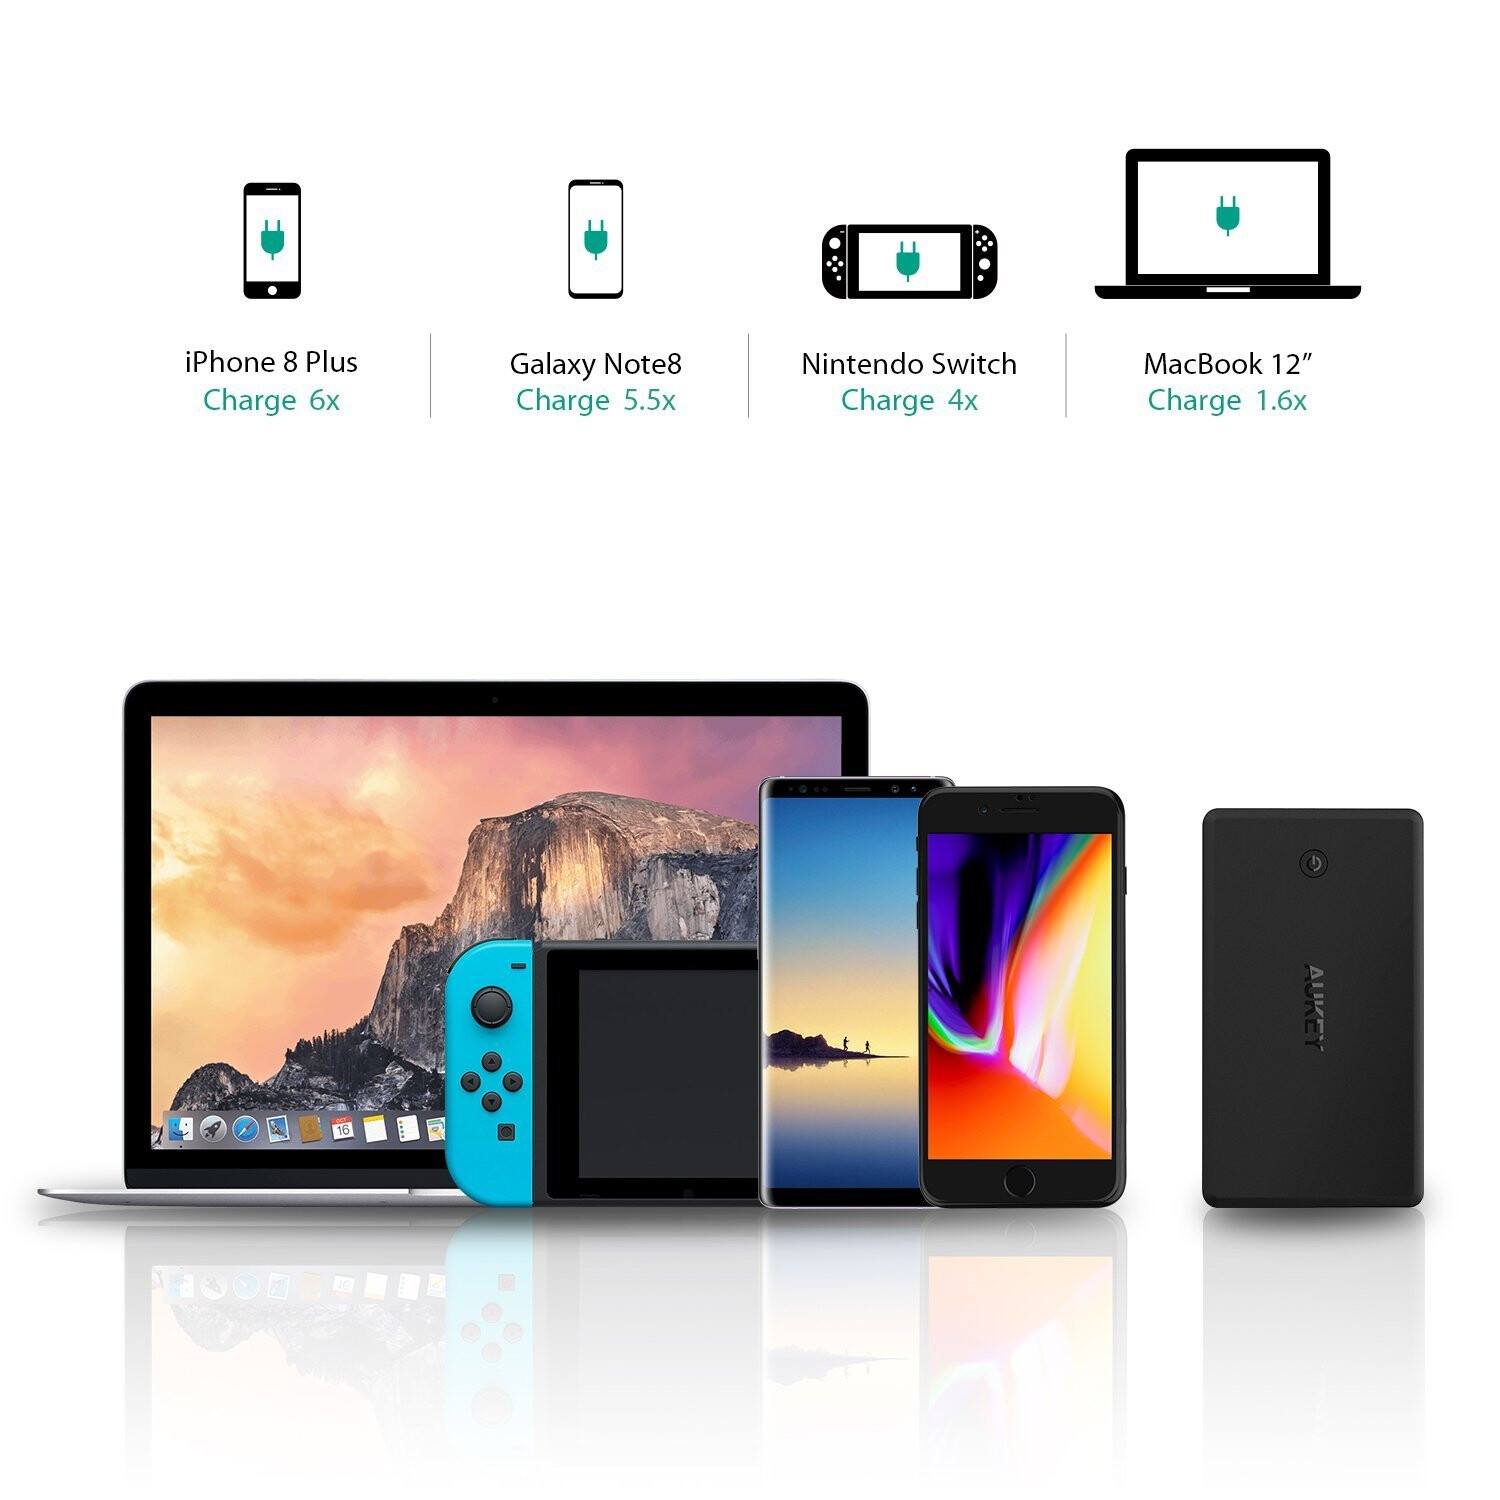 The Best Portable Chargers And Powerbanks To Buy In 2018 Samsung Galaxy S9 Free Anker Powerbank Mah 10000 Black Aukey Pb Y7